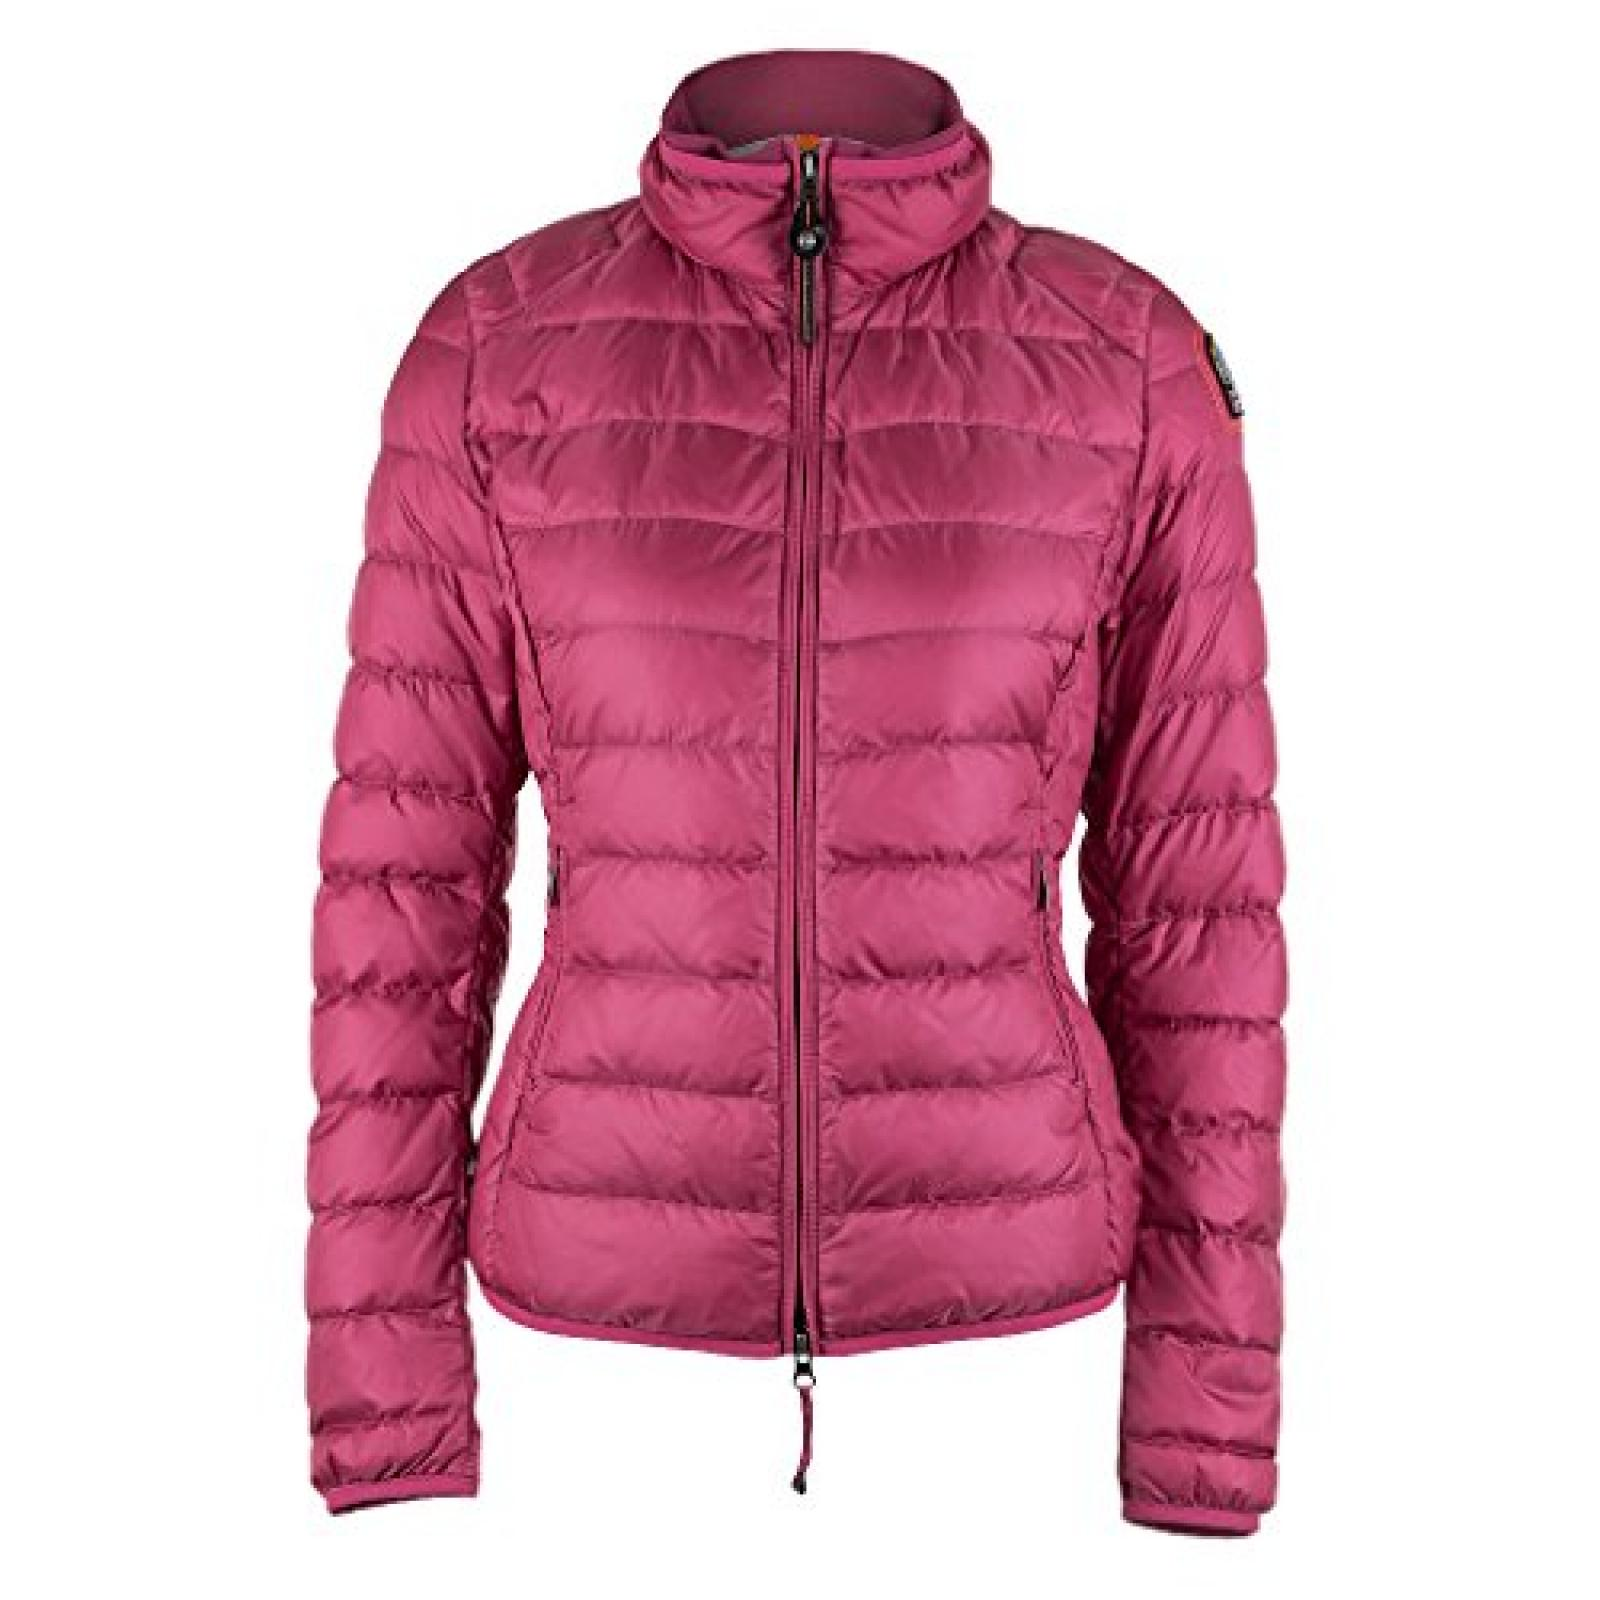 Parajumpers Damen Super Light Weight Daunen Jacke GEENA 6 fuchsia Gr. L